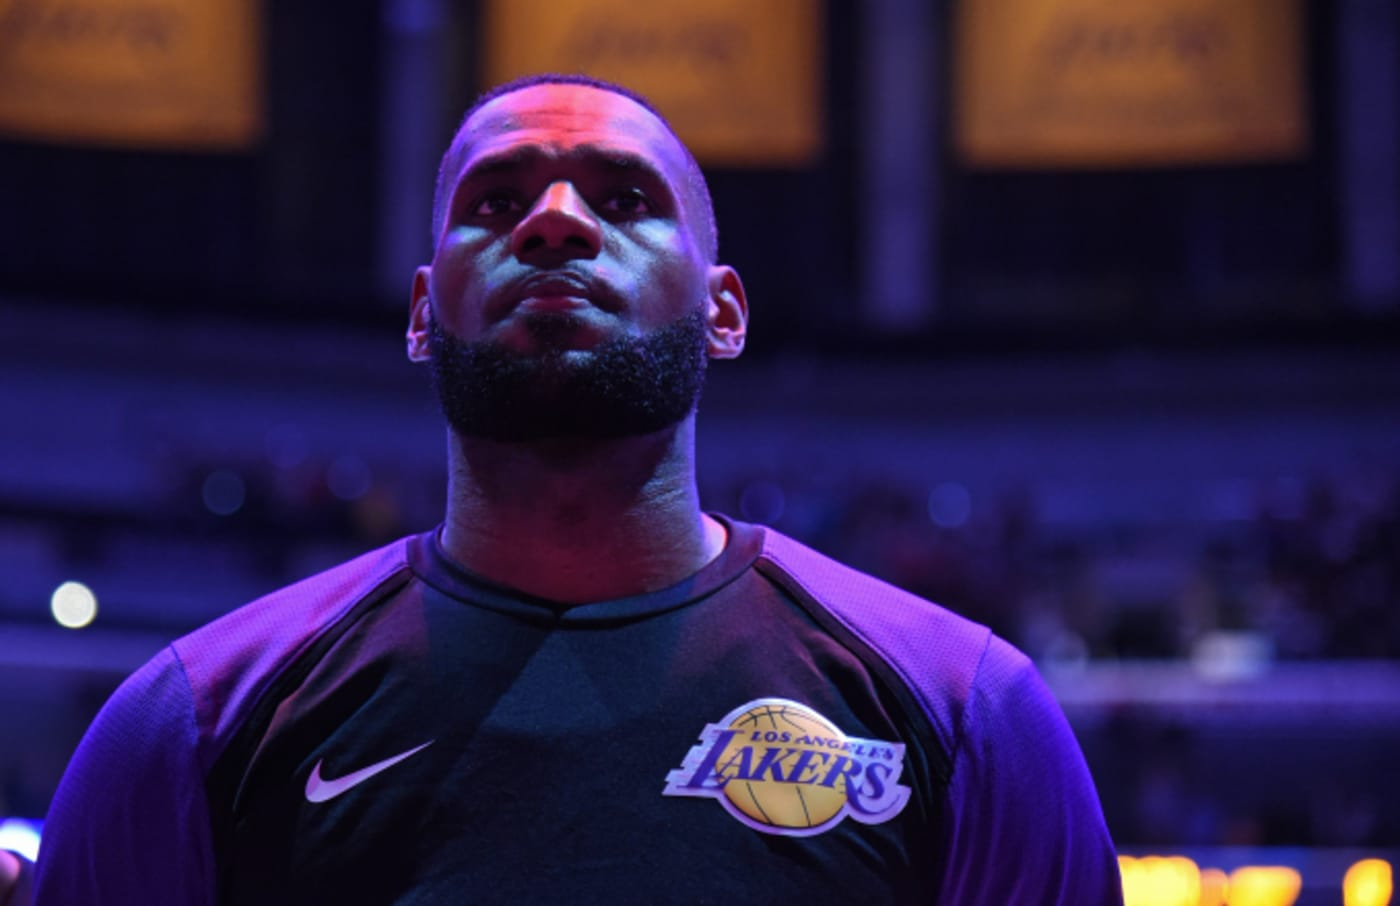 LeBron James is photographed during the national anthem